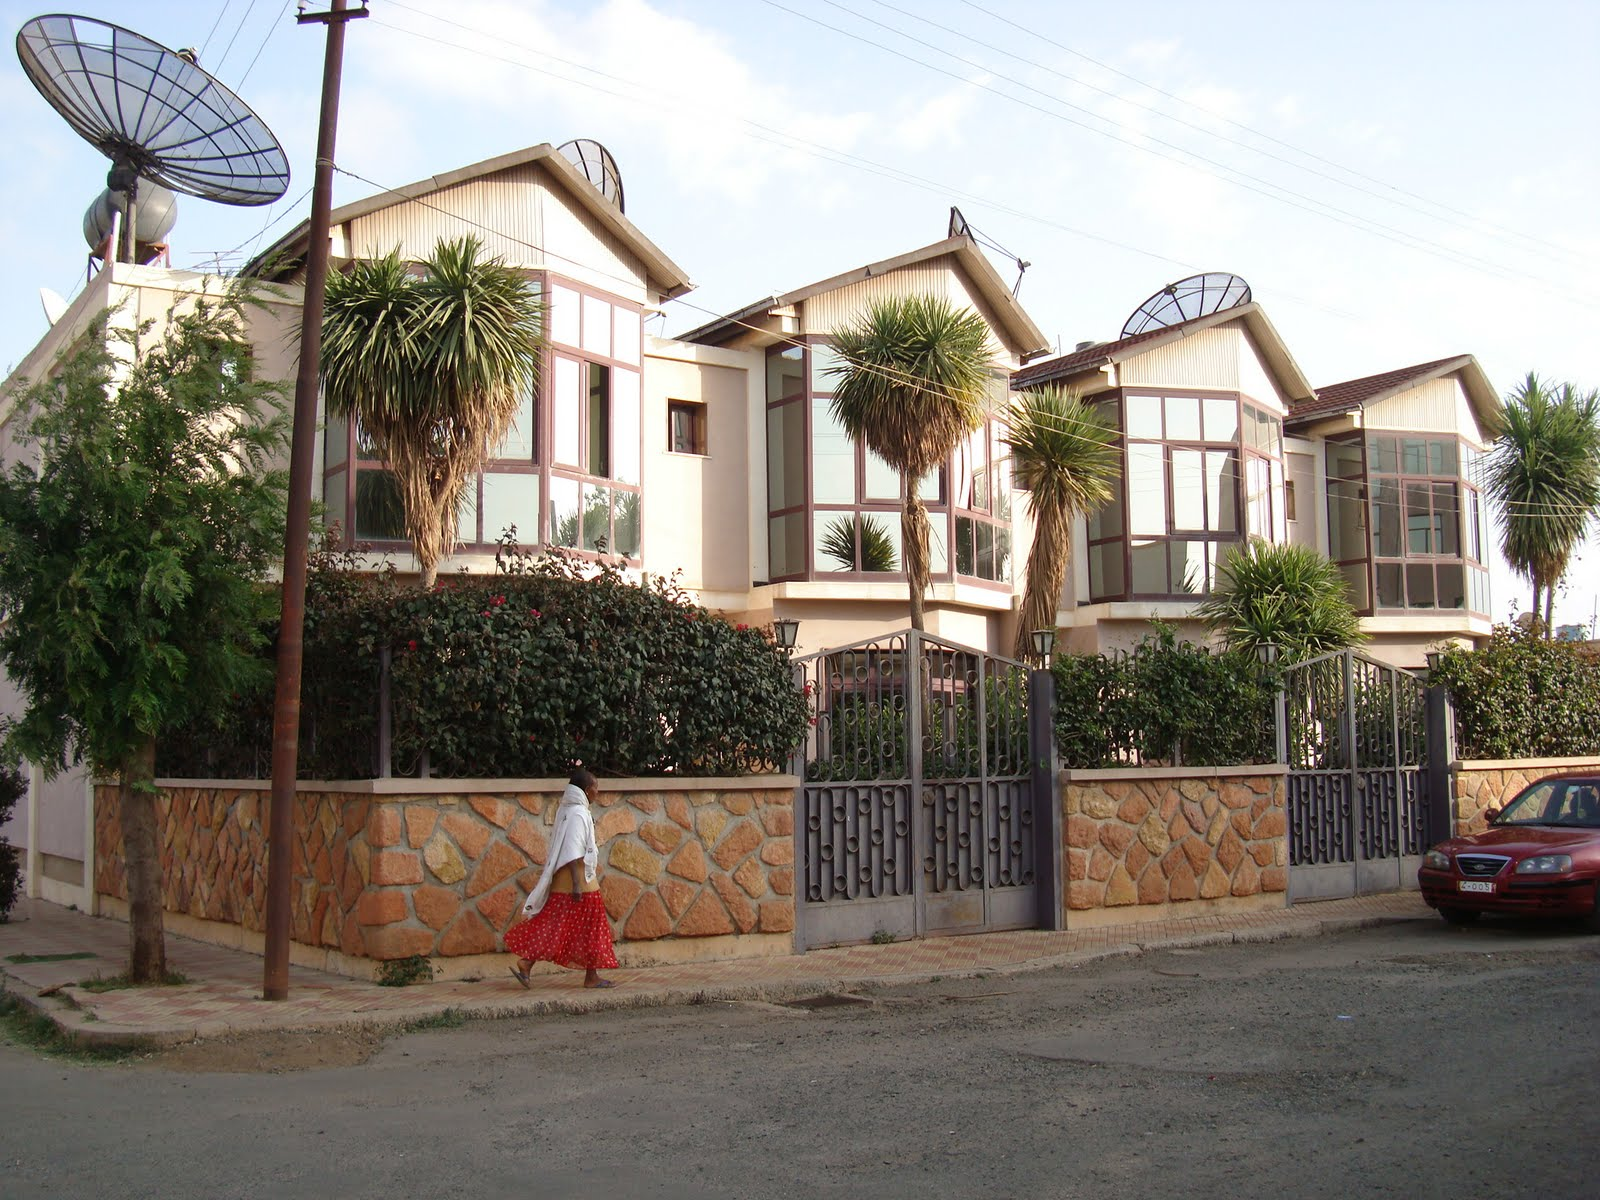 Asmara eritrea travel guide and travel info tourist for Houses pictures gallery